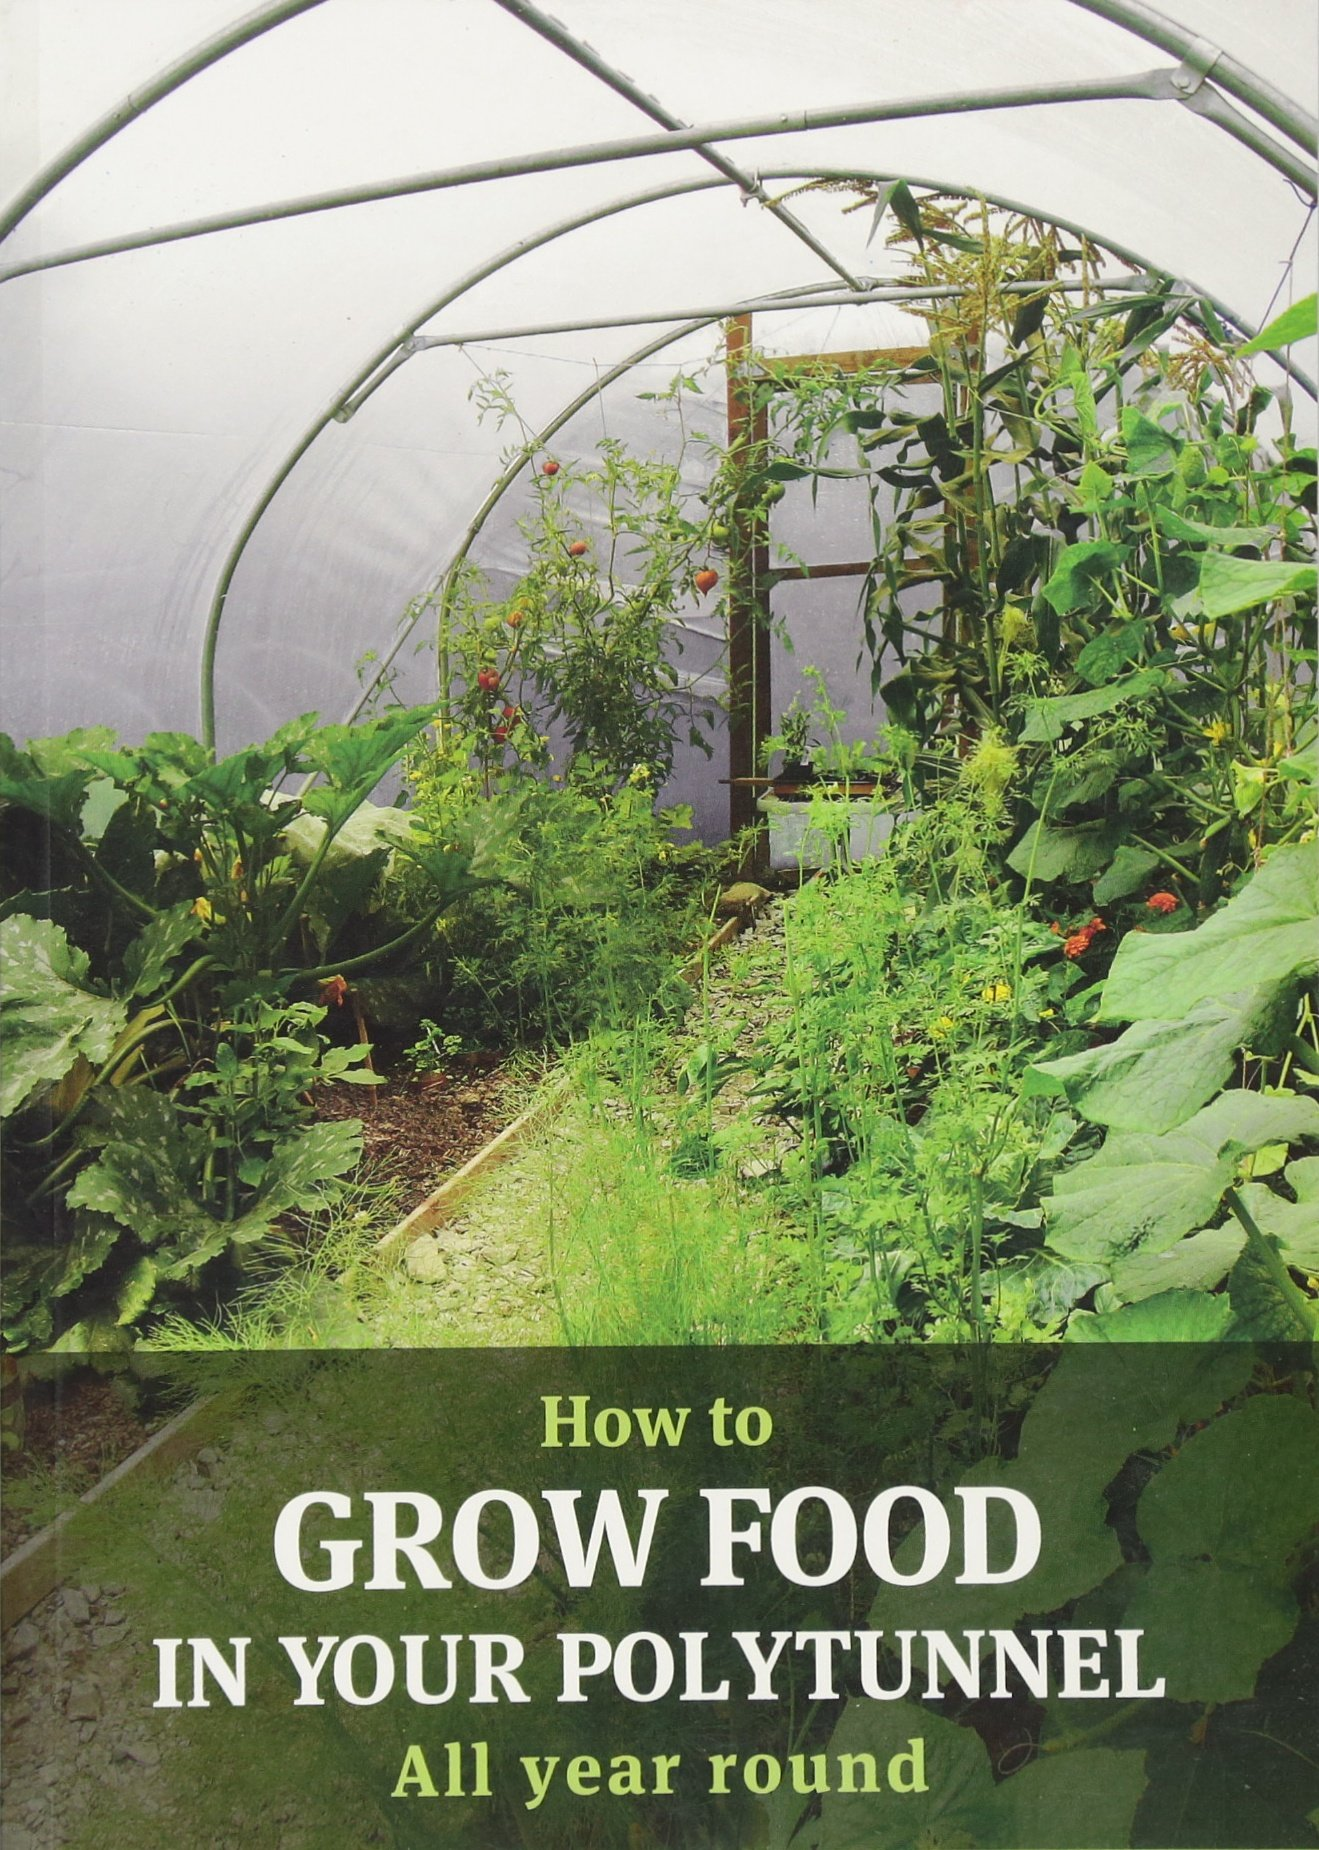 How To Grow Food In Your Polytunnel Amazon Mark Gatter Andy